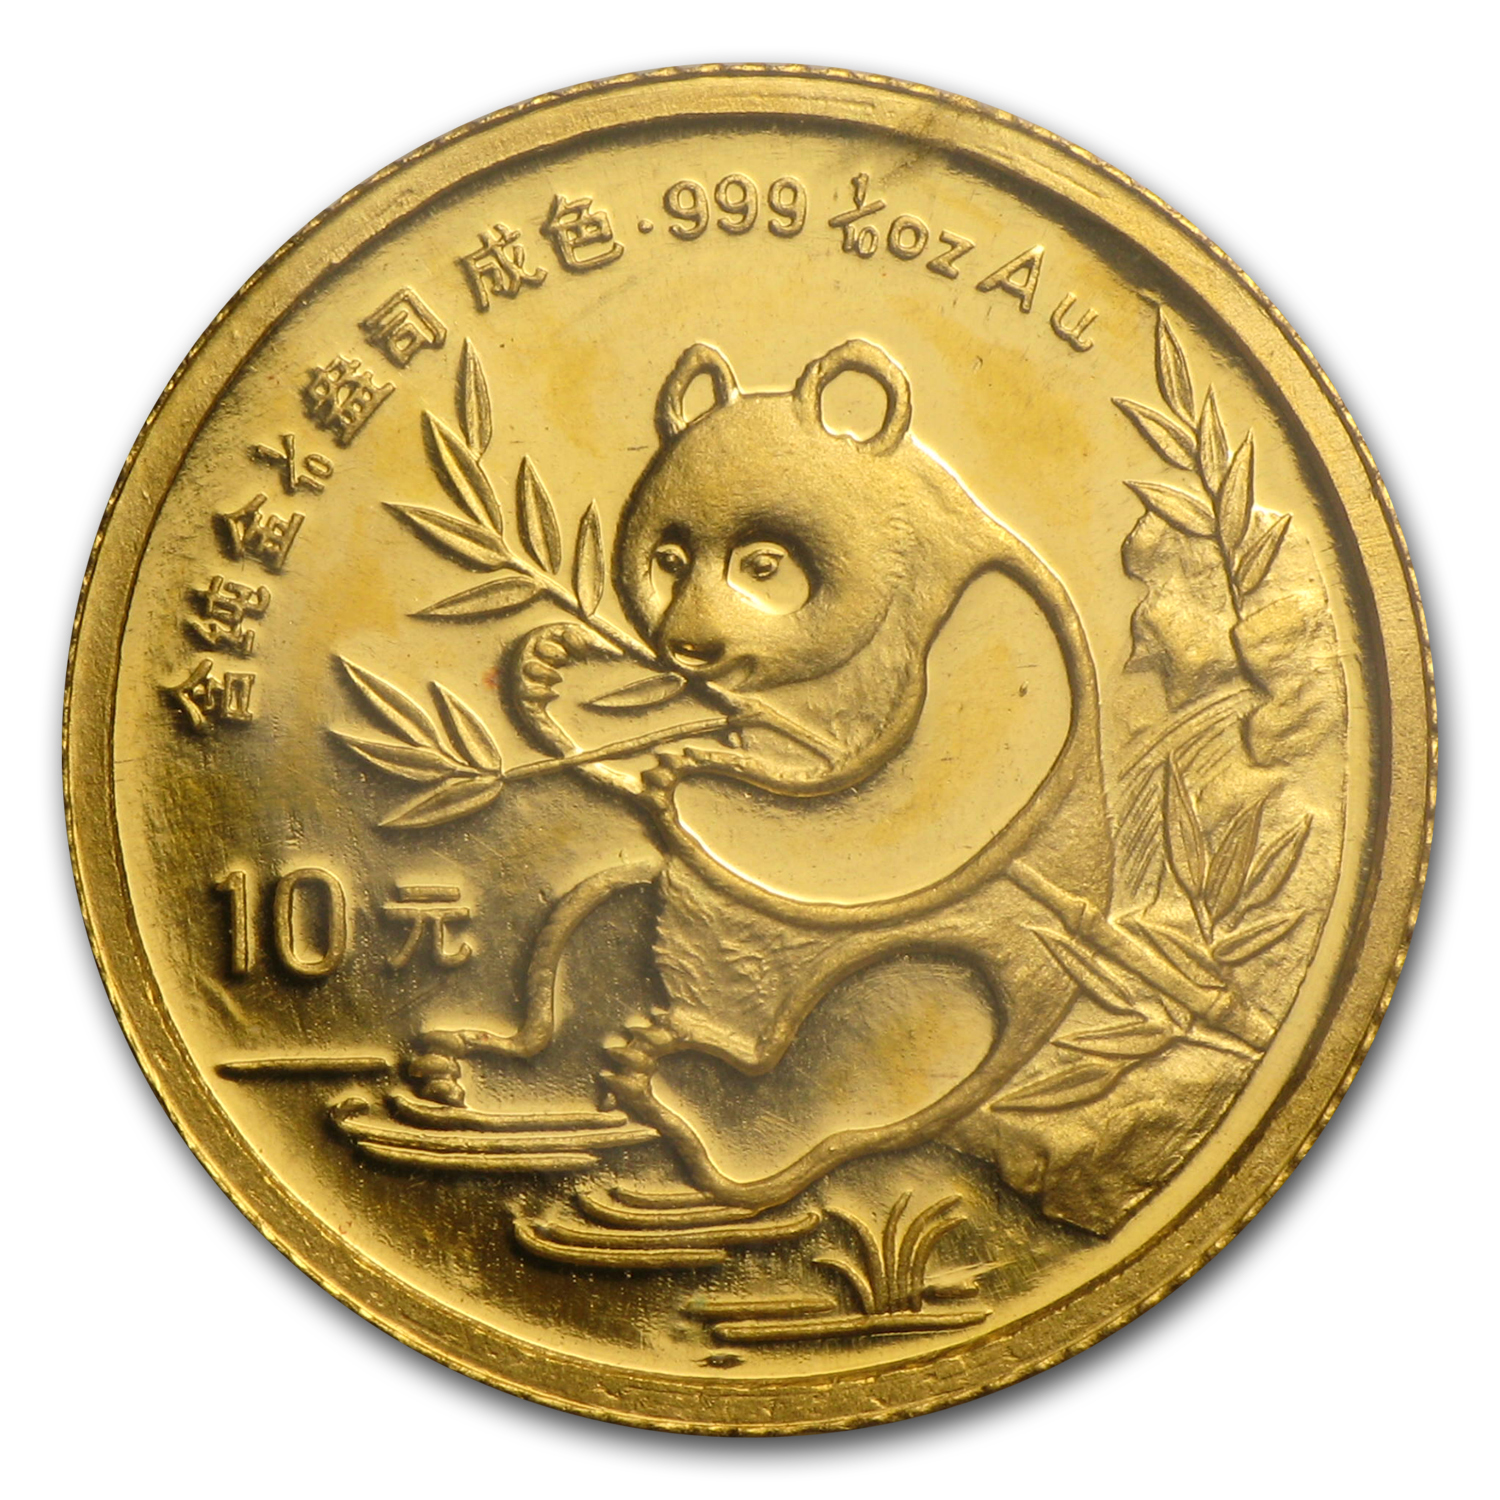 1991 1/10 oz Gold Chinese Panda Large Date BU (Sealed)